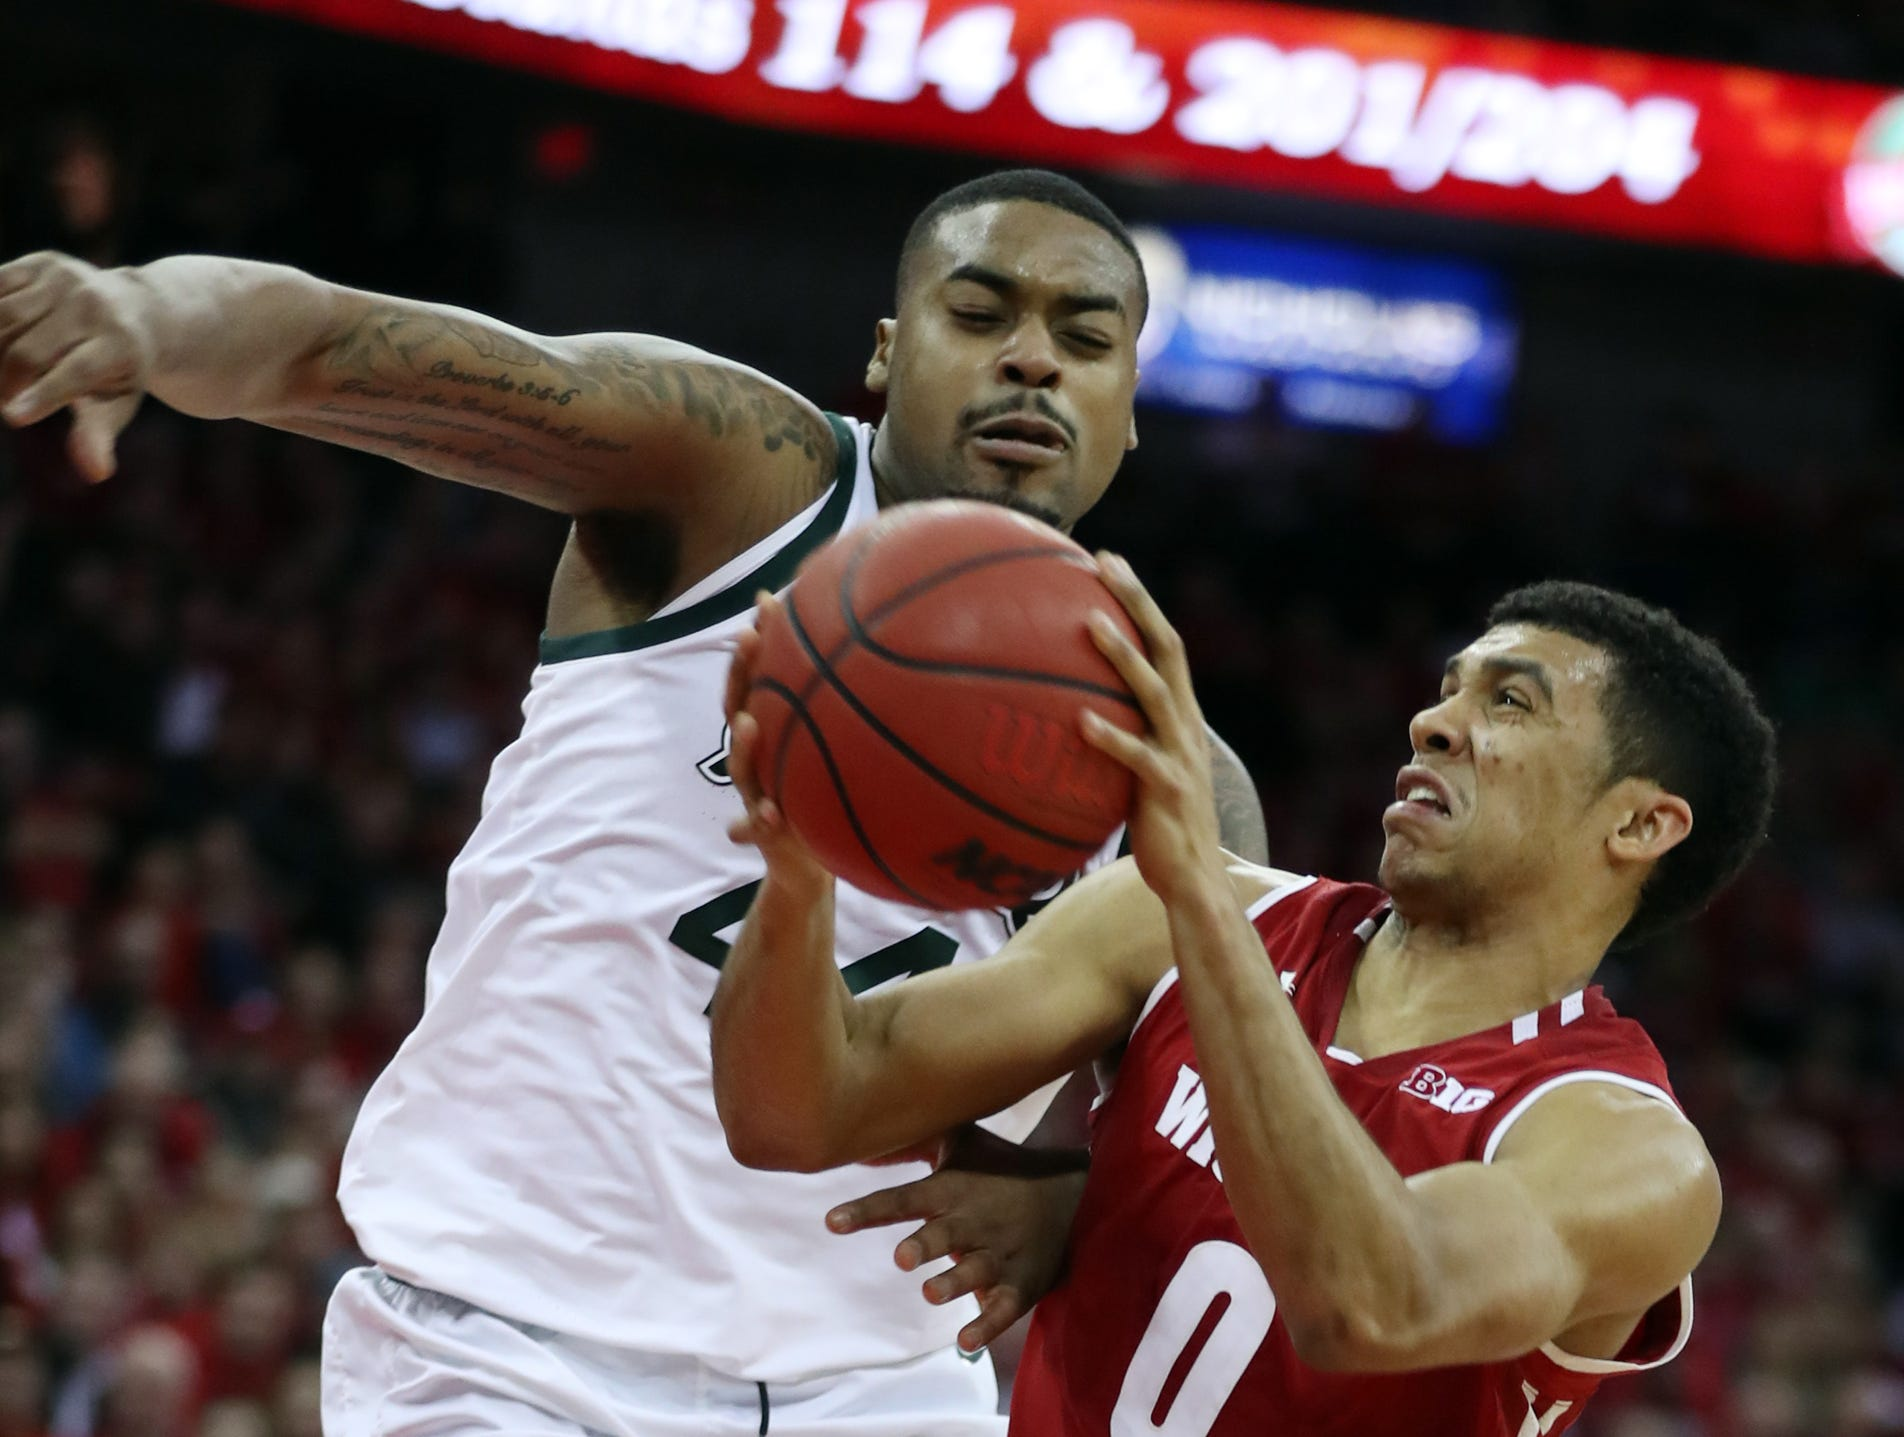 Wisconsin Badgers guard D'Mitrik Trice (0) shoots the ball as Michigan State Spartans forward Nick Ward (44) defends during the second half during the second half at the Kohl Center.